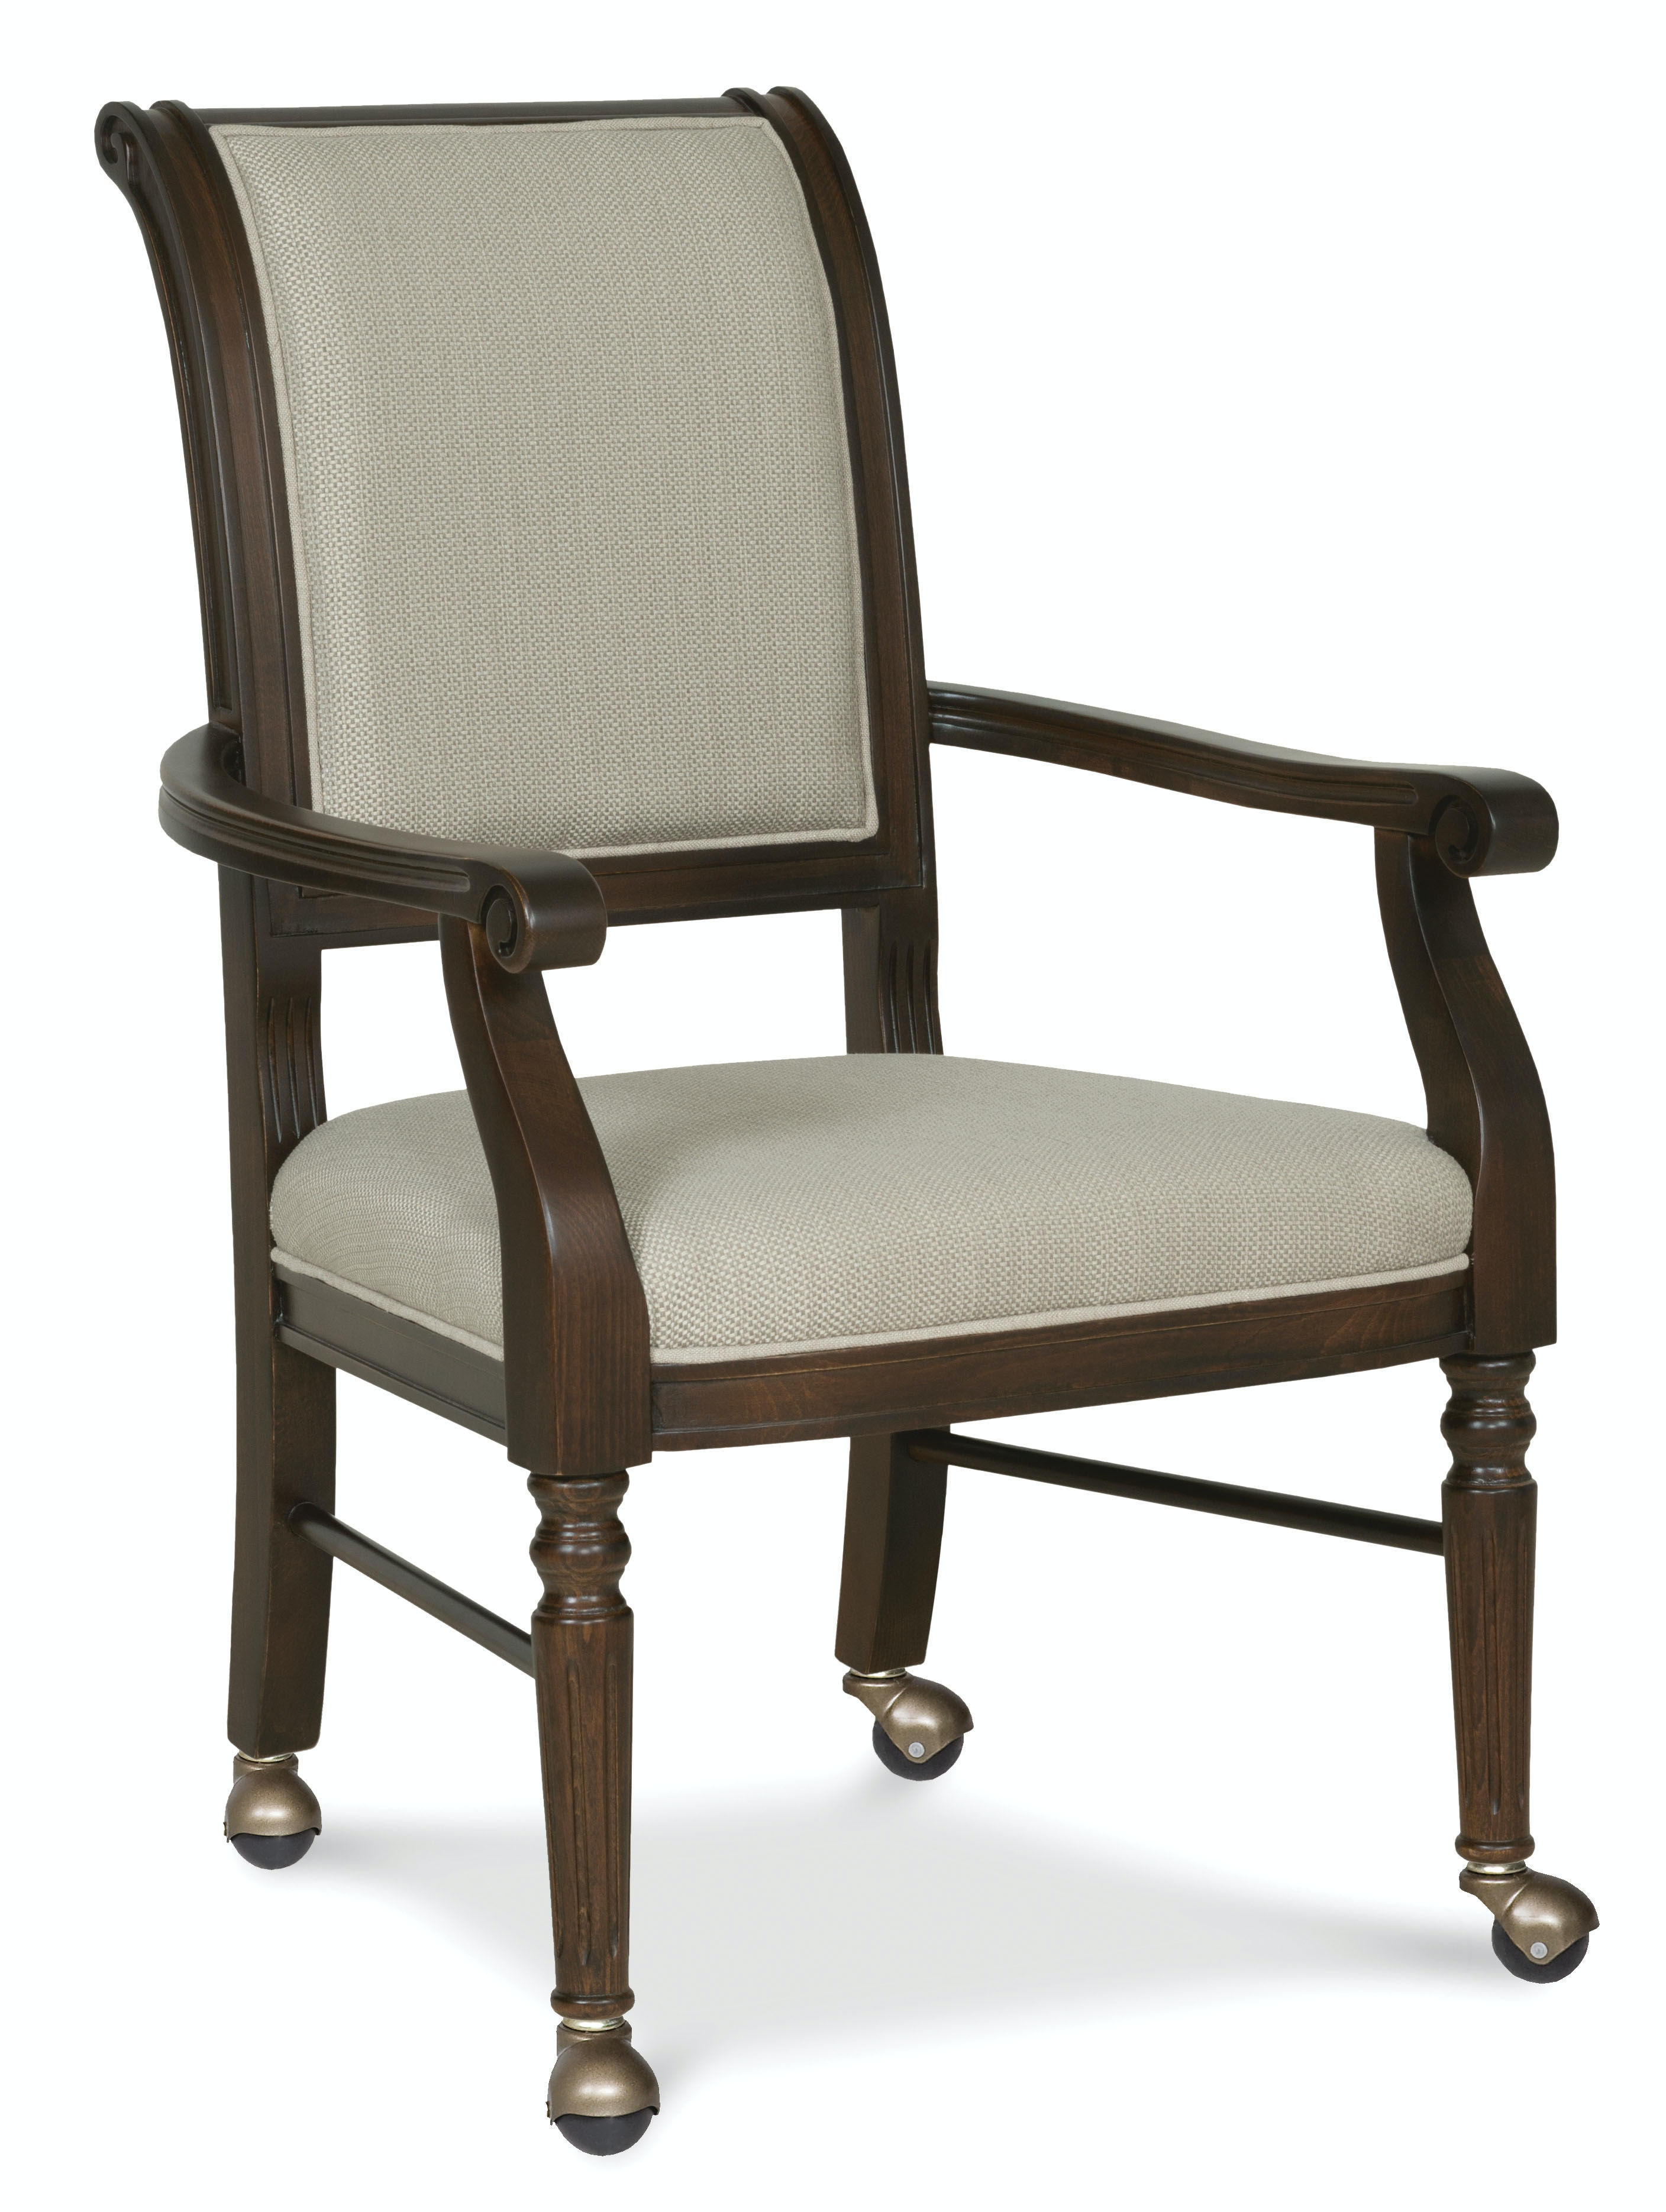 Fairfield Chair Company Delano Arm Chair 5434 A4